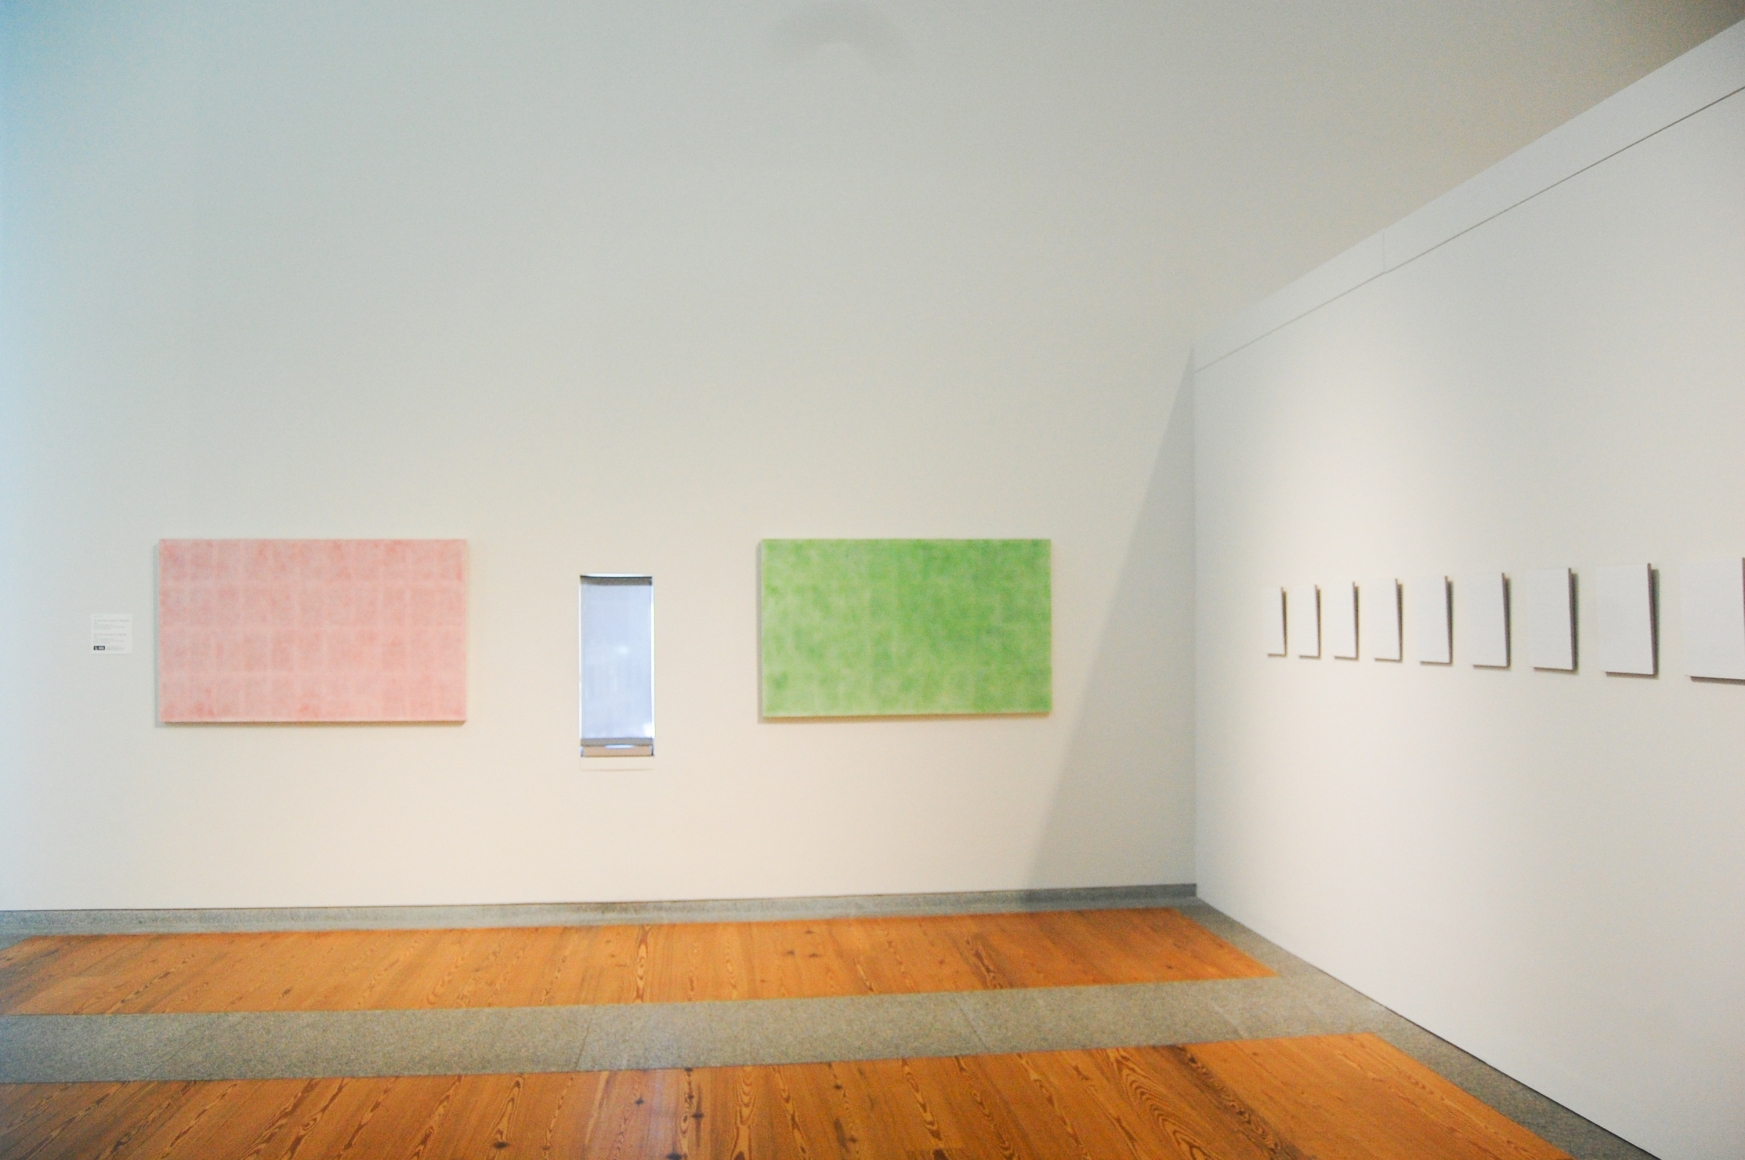 Unbound: Tim Rollins and K.O.S, Installation view, Portland Museum of Art, Portland, ME